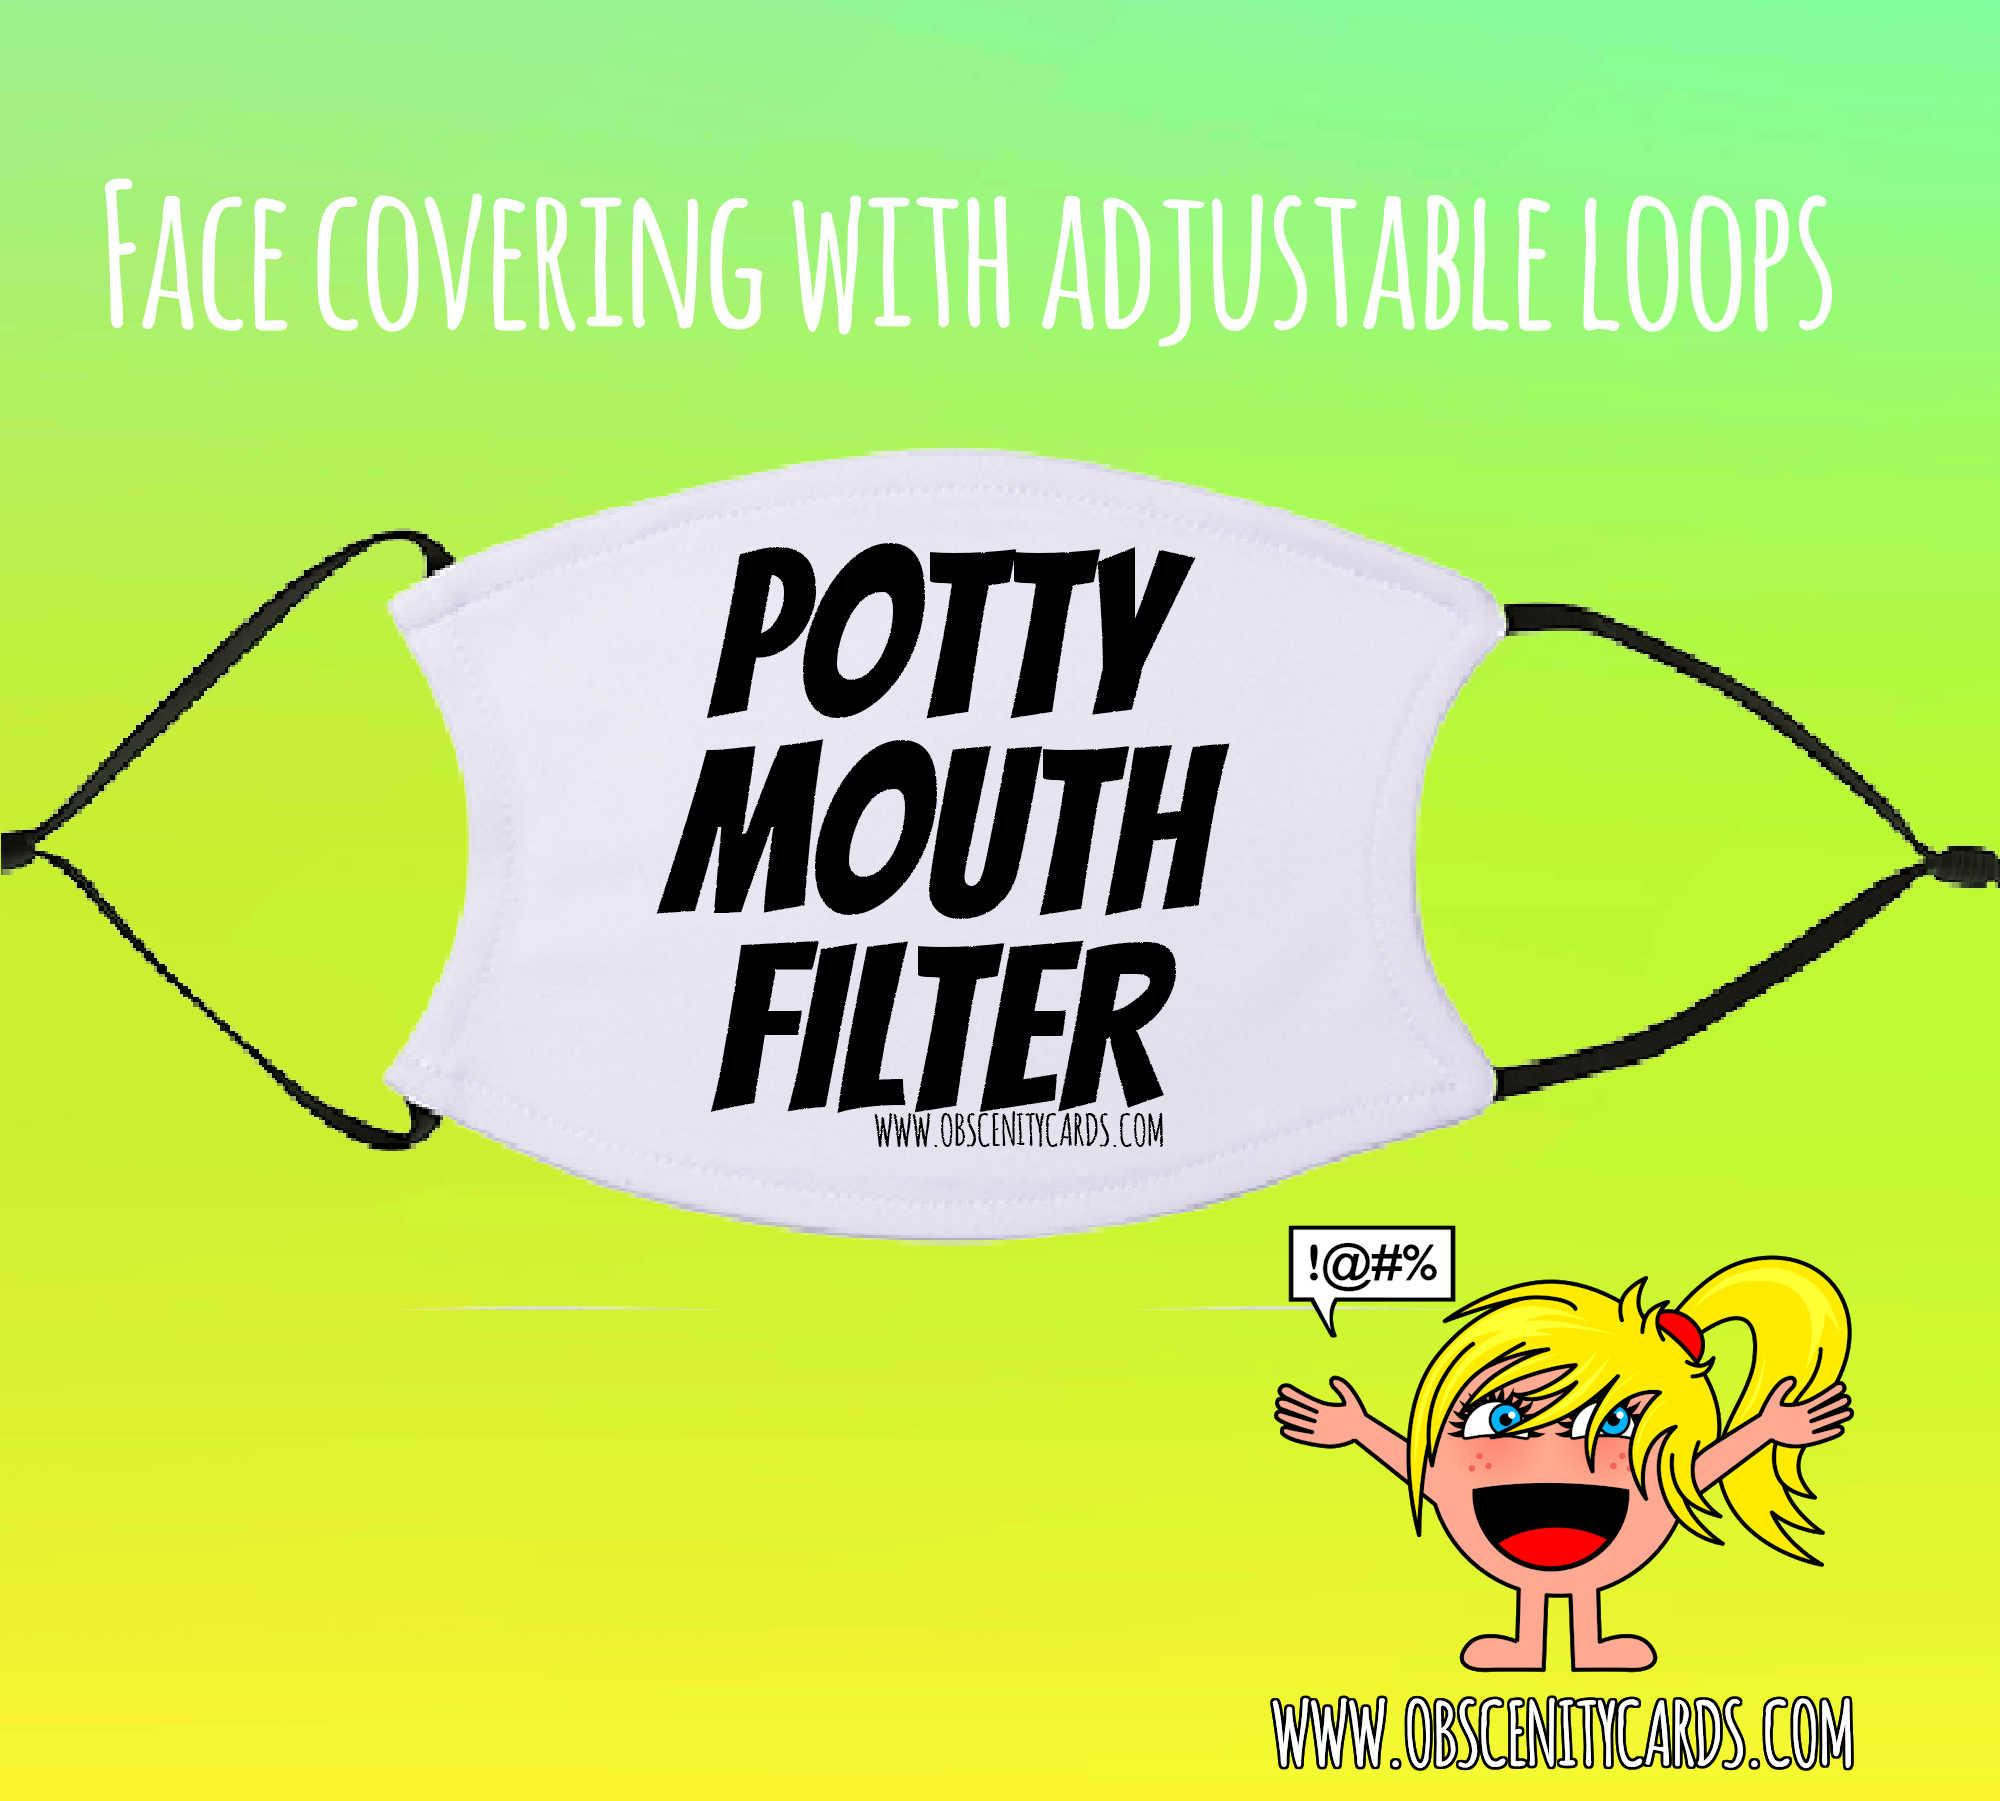 POTTY MOUTH FILTER FACE COVERING / FACE FASHION / FACIAL COVER